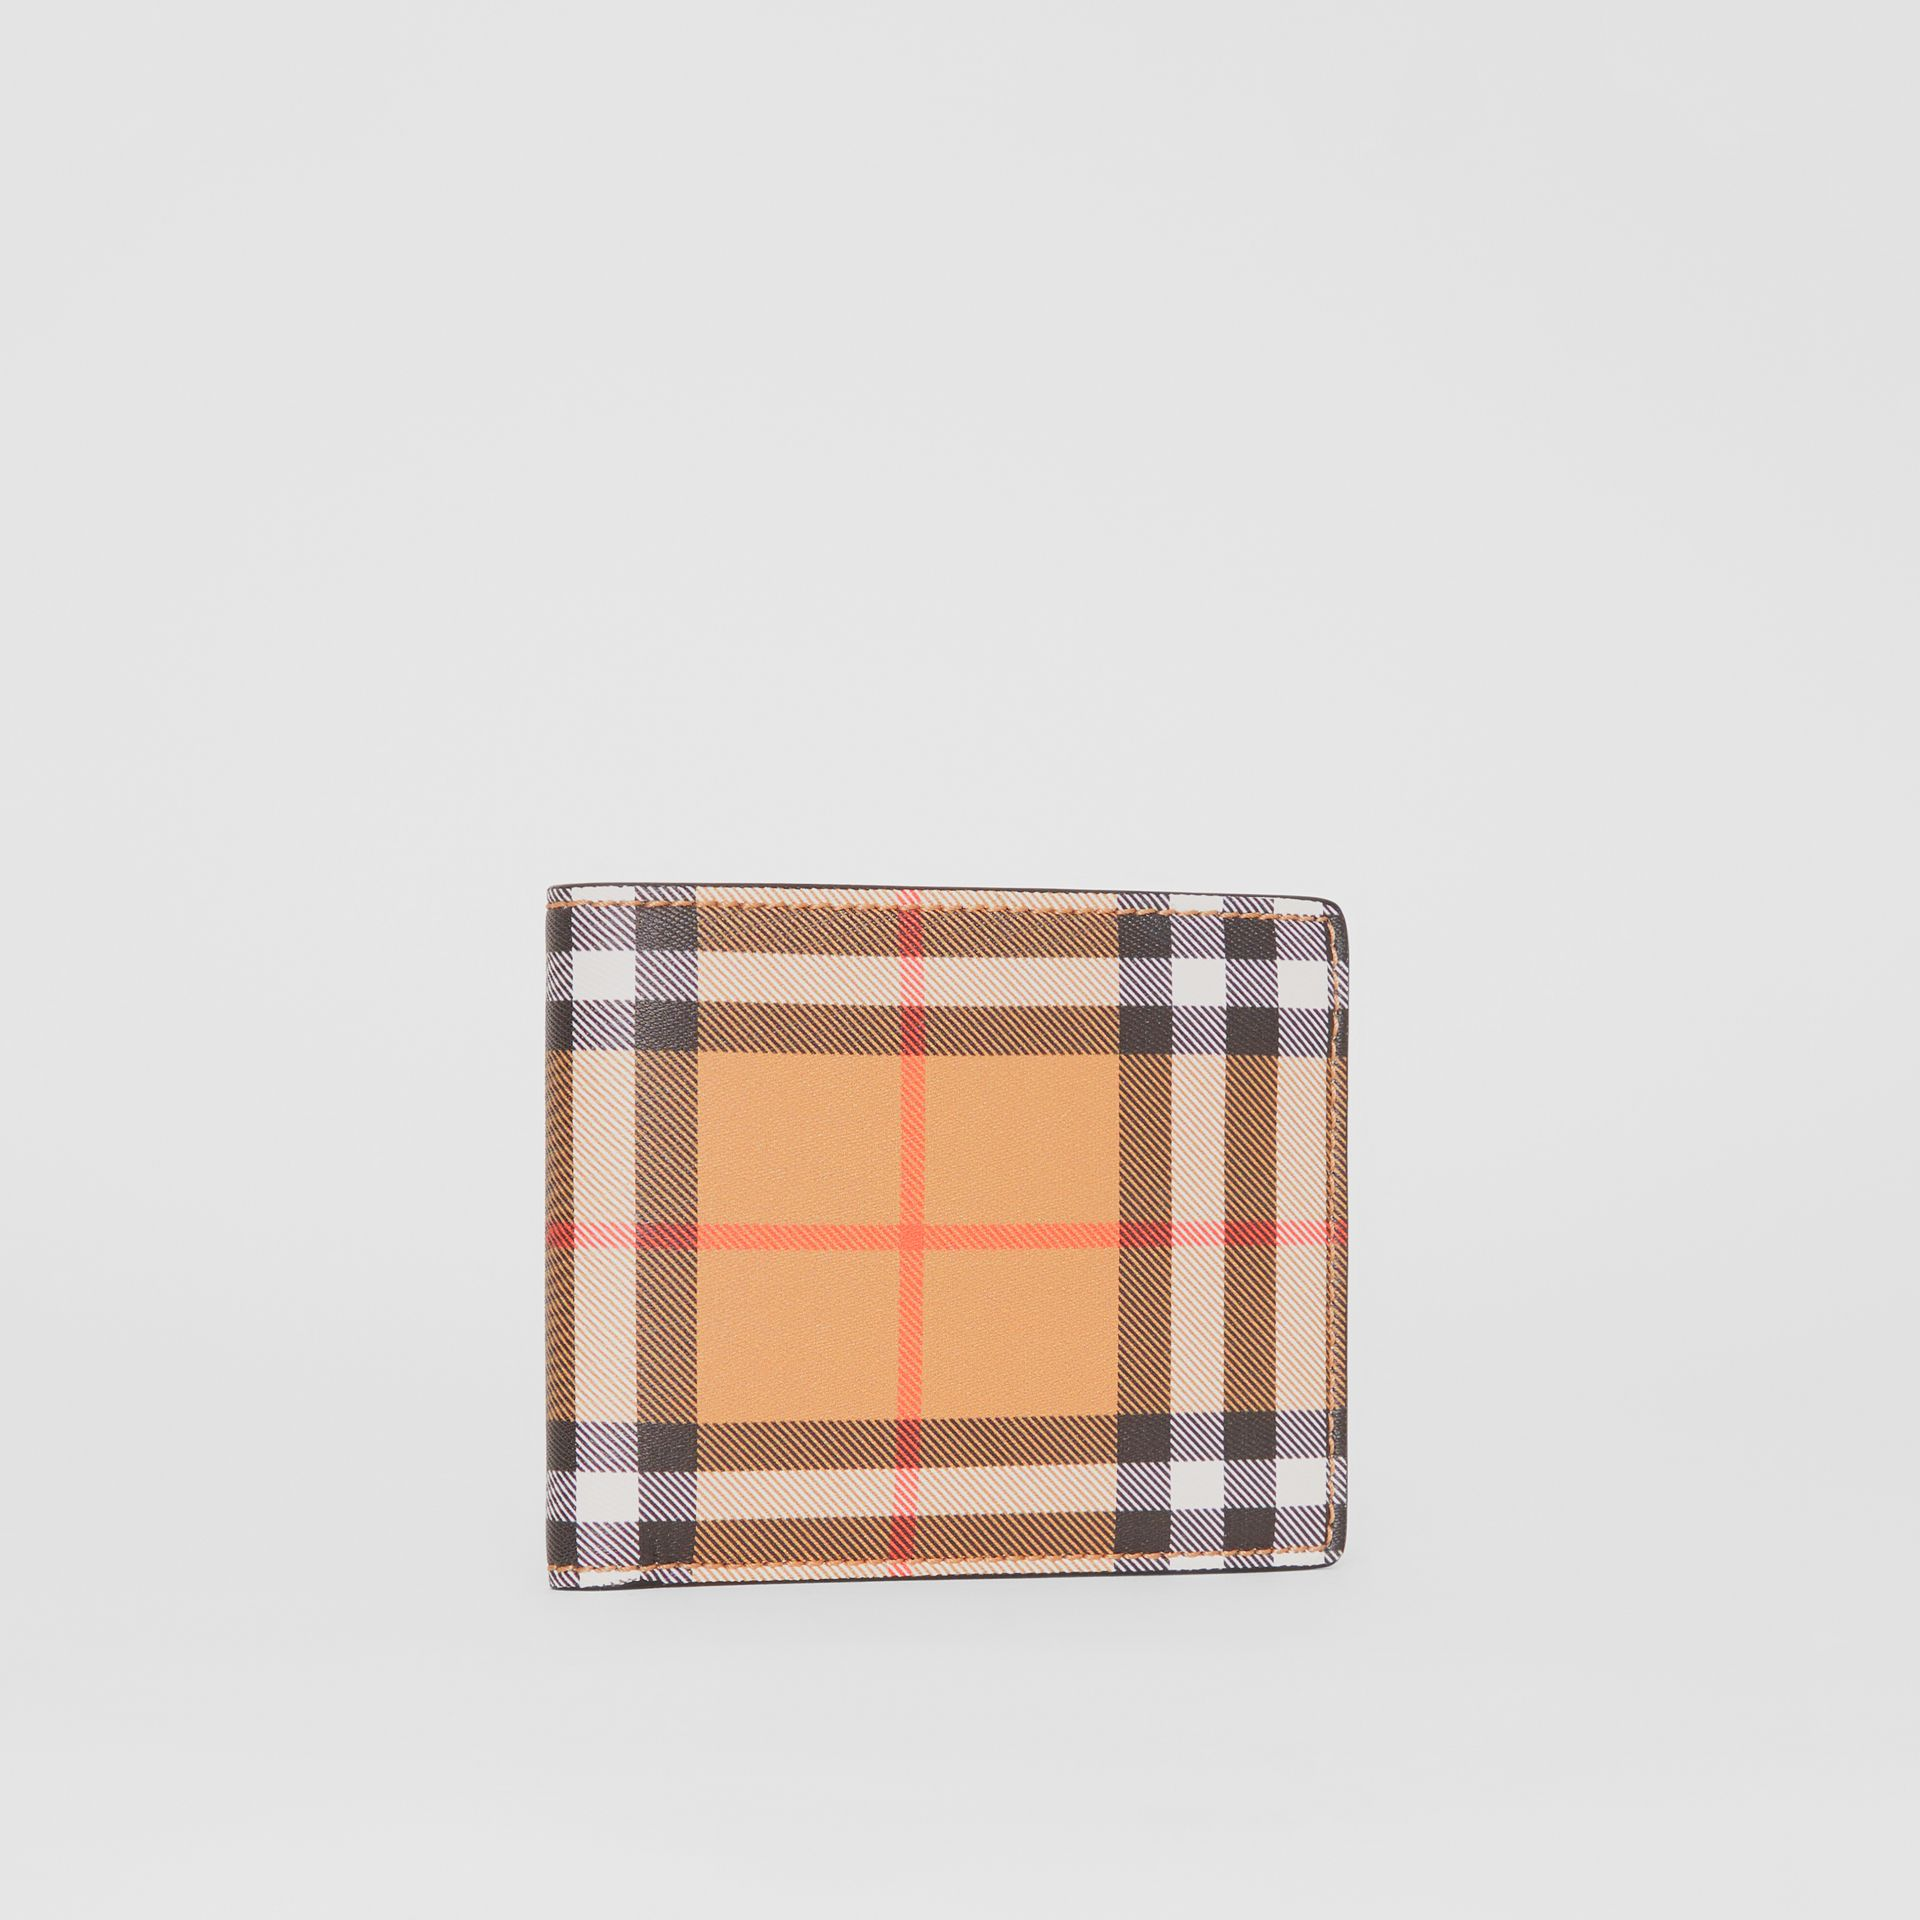 Vintage Check Leather ID Wallet in Black - Men | Burberry - gallery image 3